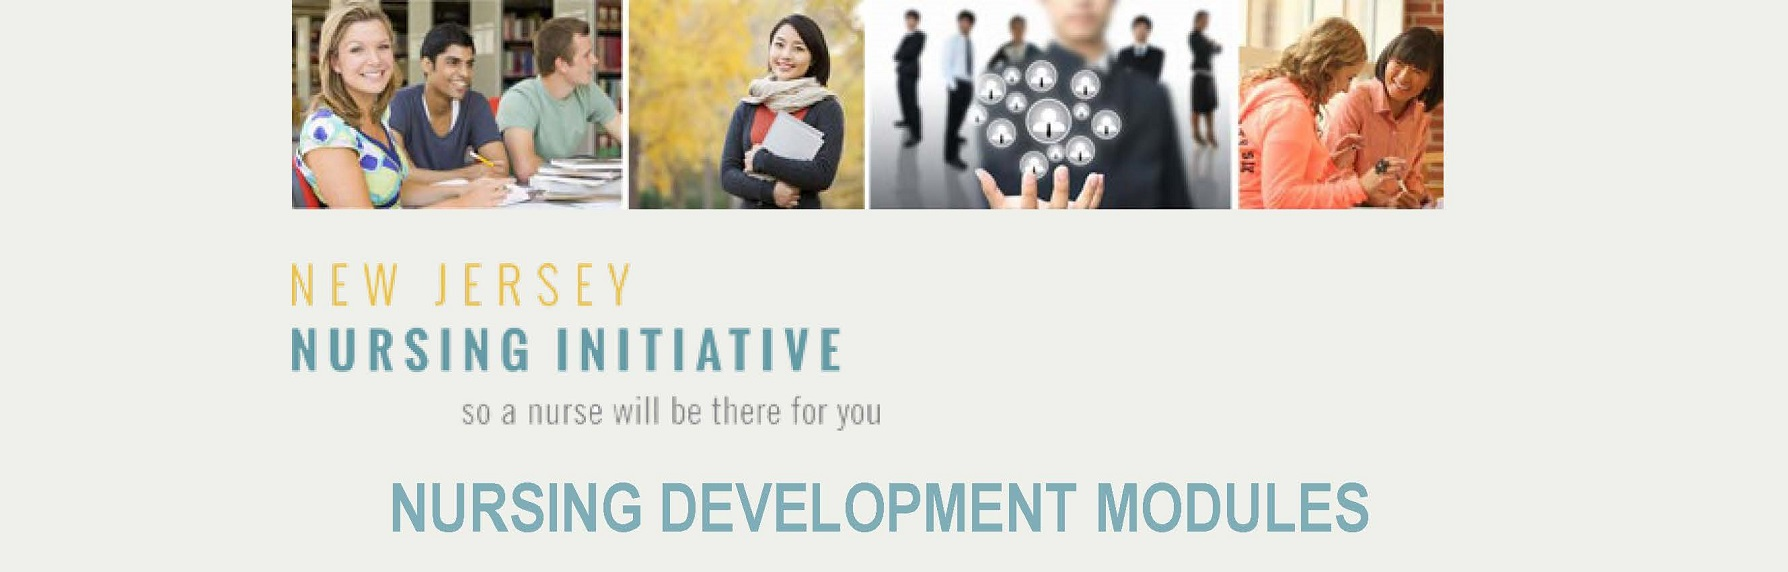 New Jersey Nursing Initiative: Nursing Development Modules - Organization Registration Banner